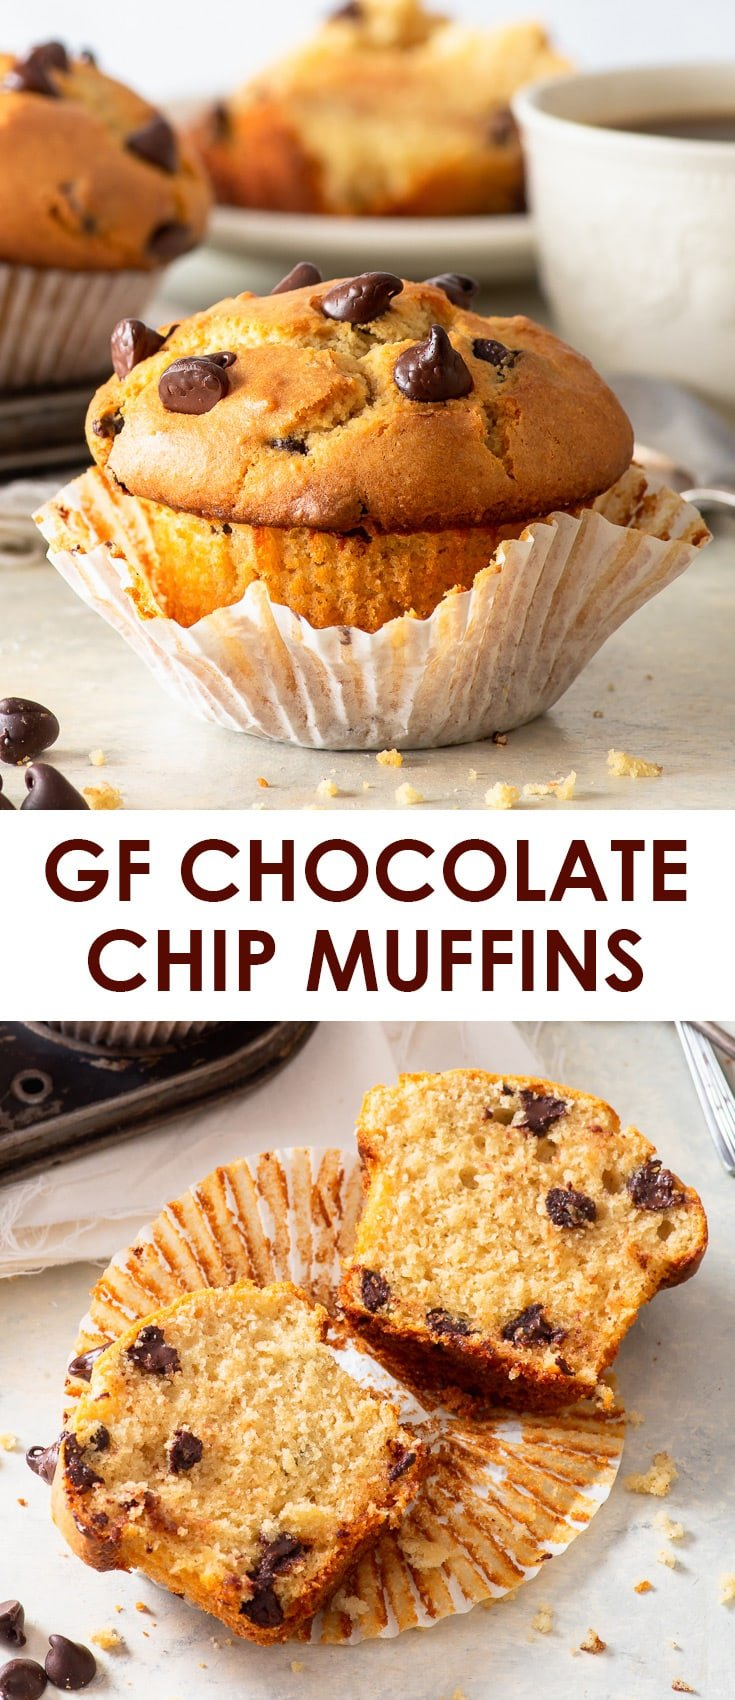 Bakery Style Gluten Free Chocolate Chip Muffins - These gluten free bakery style chocolate chip muffins tick all the boxes: they're easy to make, have a fluffy and moist crumb and a beautifully caramelised, proudly domed muffin top. Plus, some useful tips about how to keep your muffins moist and fluffy, and how to prevent the chocolate chips from sinking! Gluten free muffins. Gluten free recipes. Bakery style muffins. Jumbo muffins. Easy muffin recipes. #glutenfree #muffins